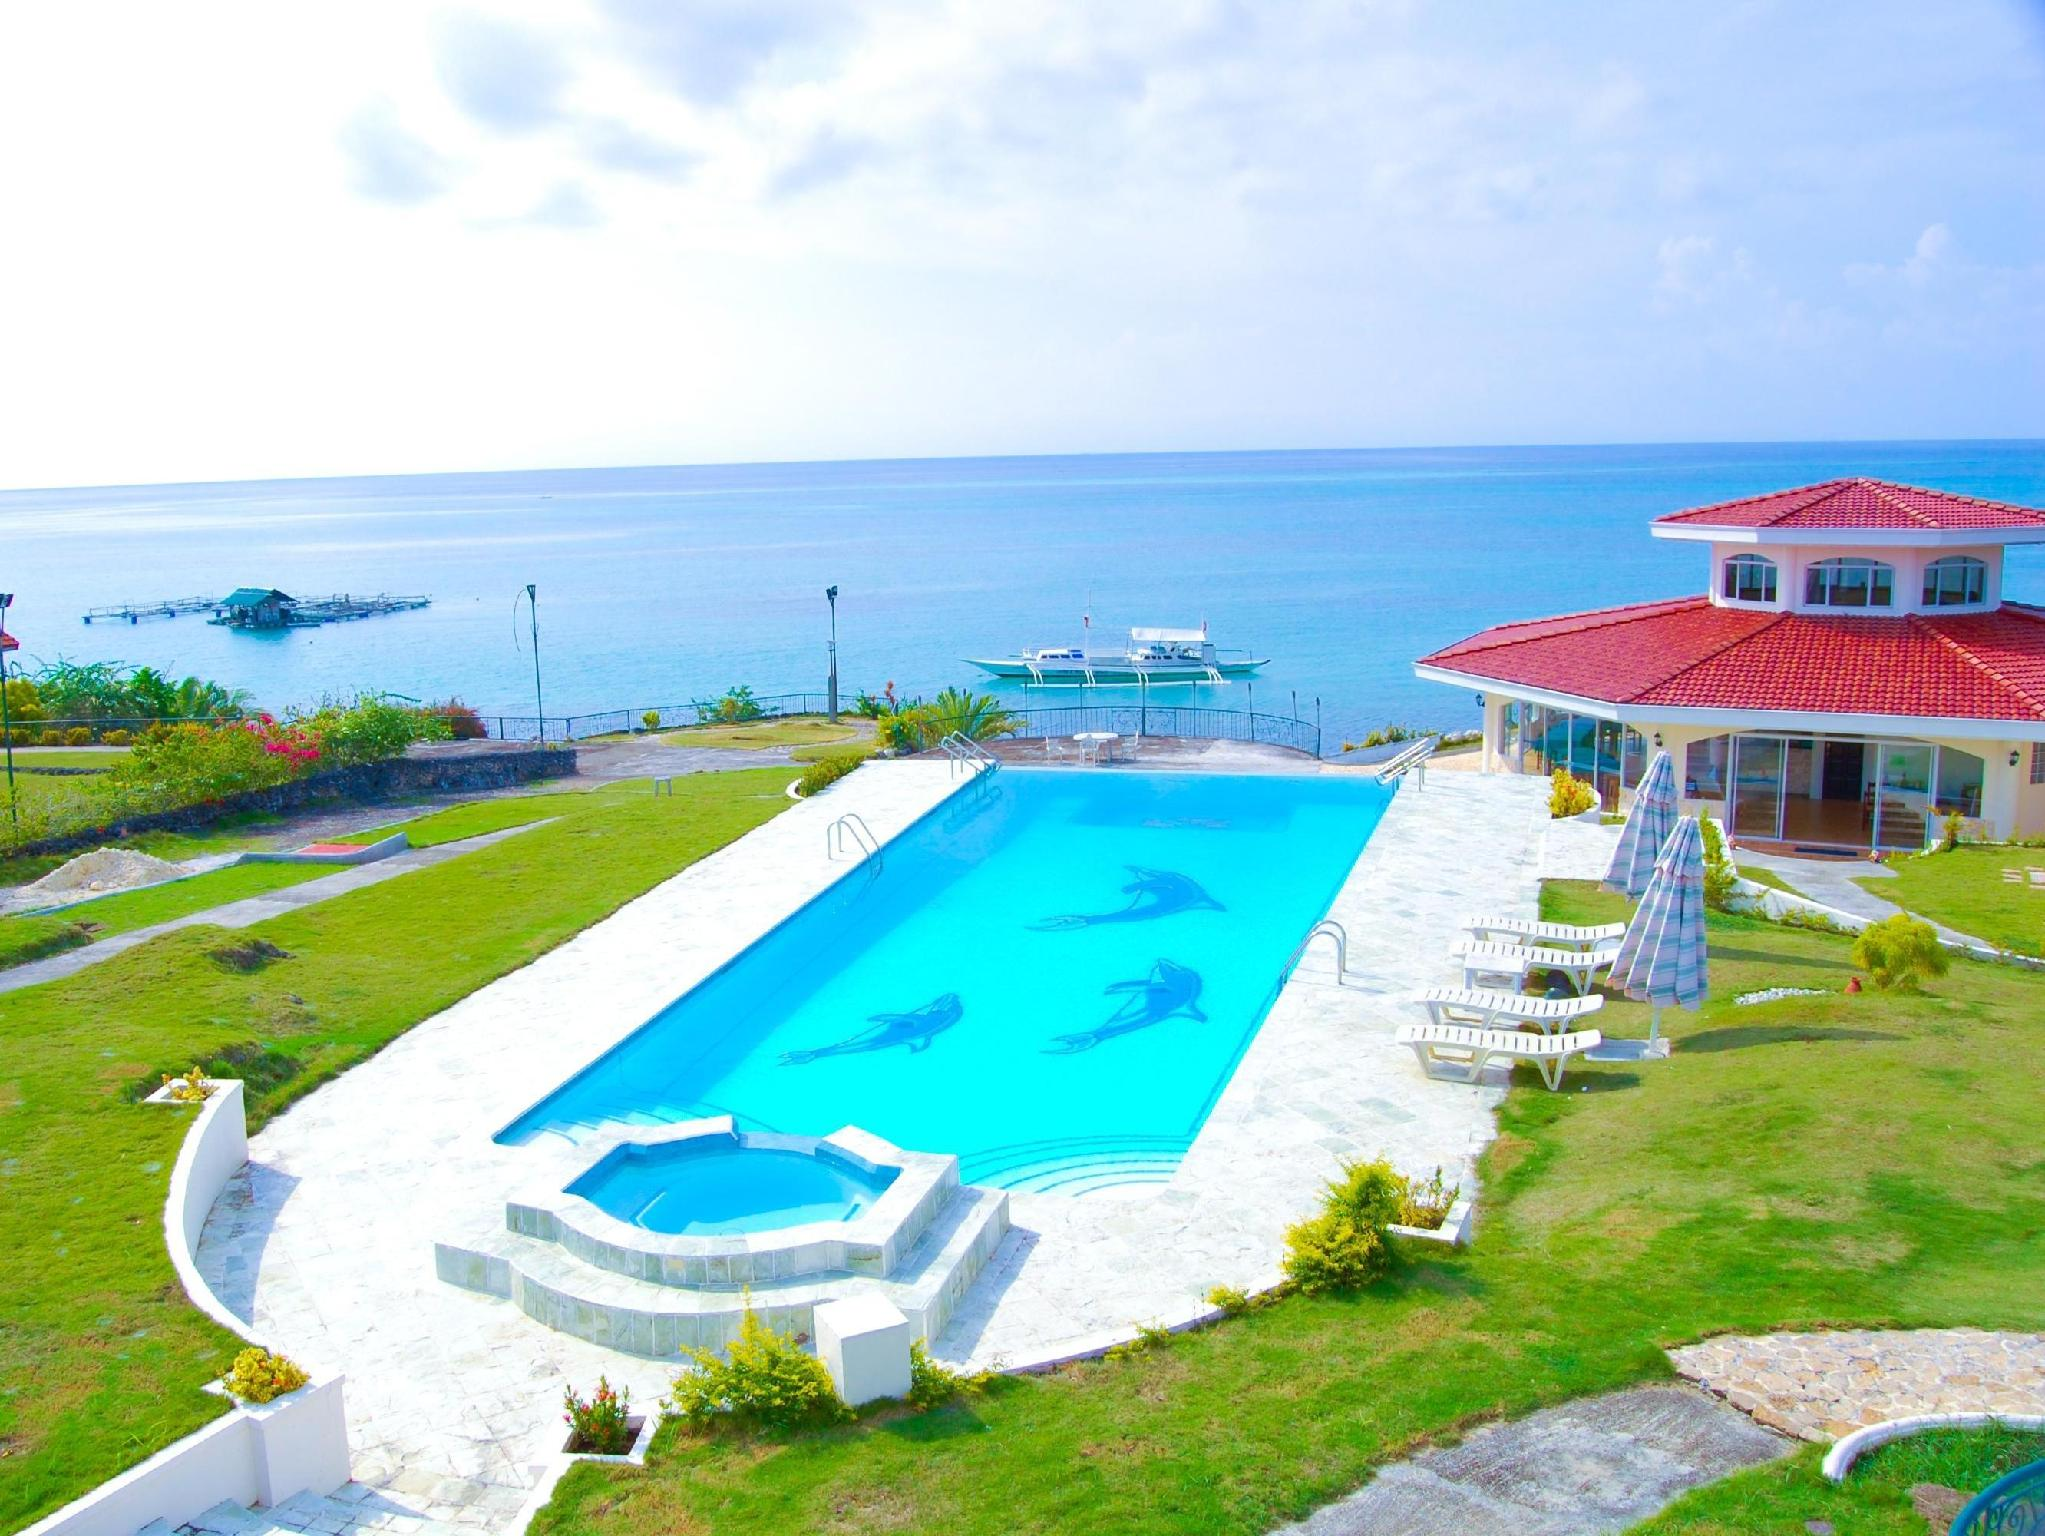 Sherwood Bay Aqua Resort & Dive School Bohol - Hotel exterieur